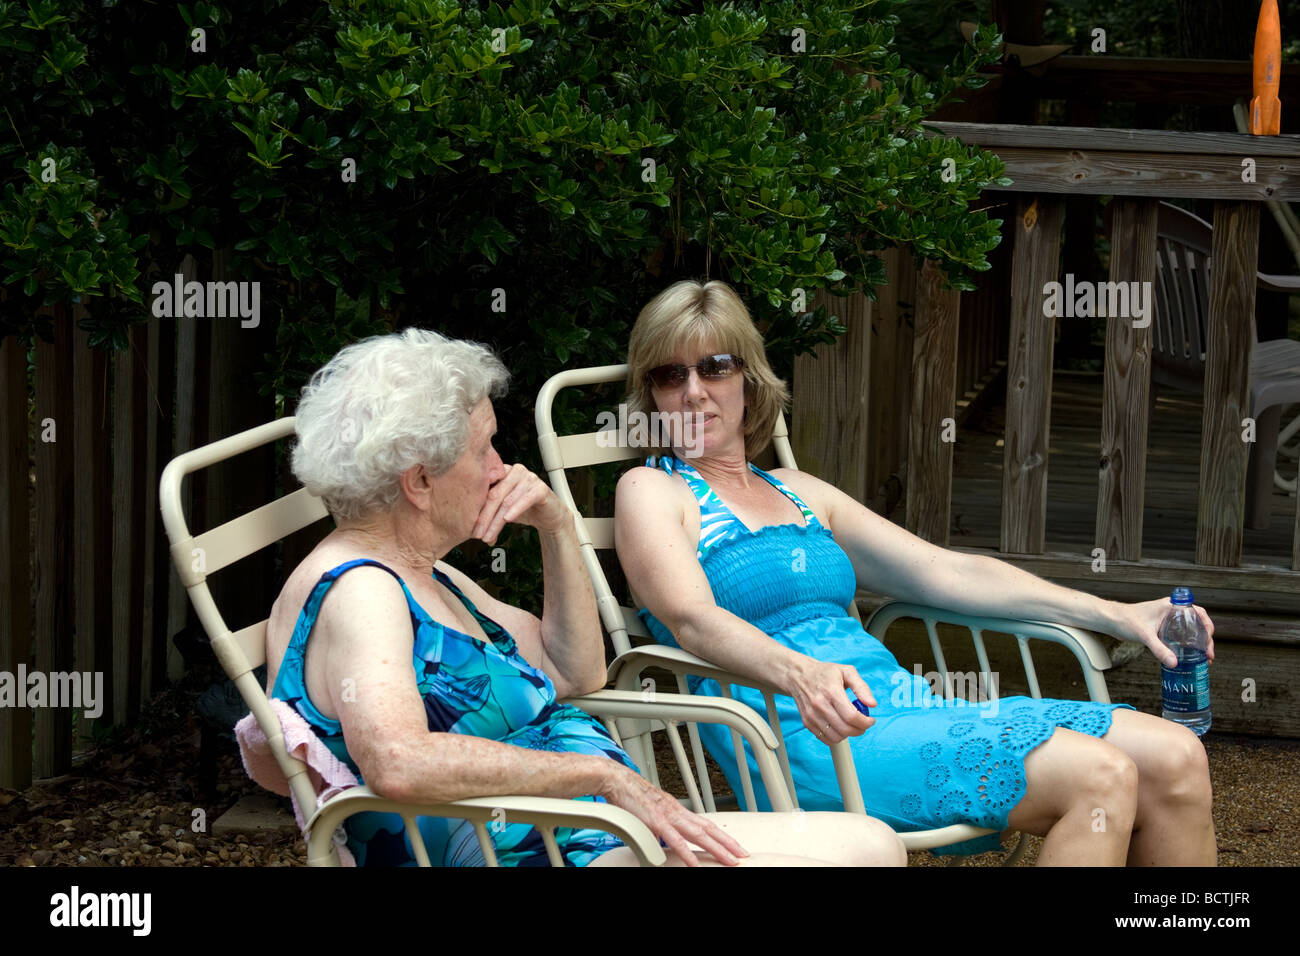 A mother and daughter talk about times past and the future to come. - Stock Image